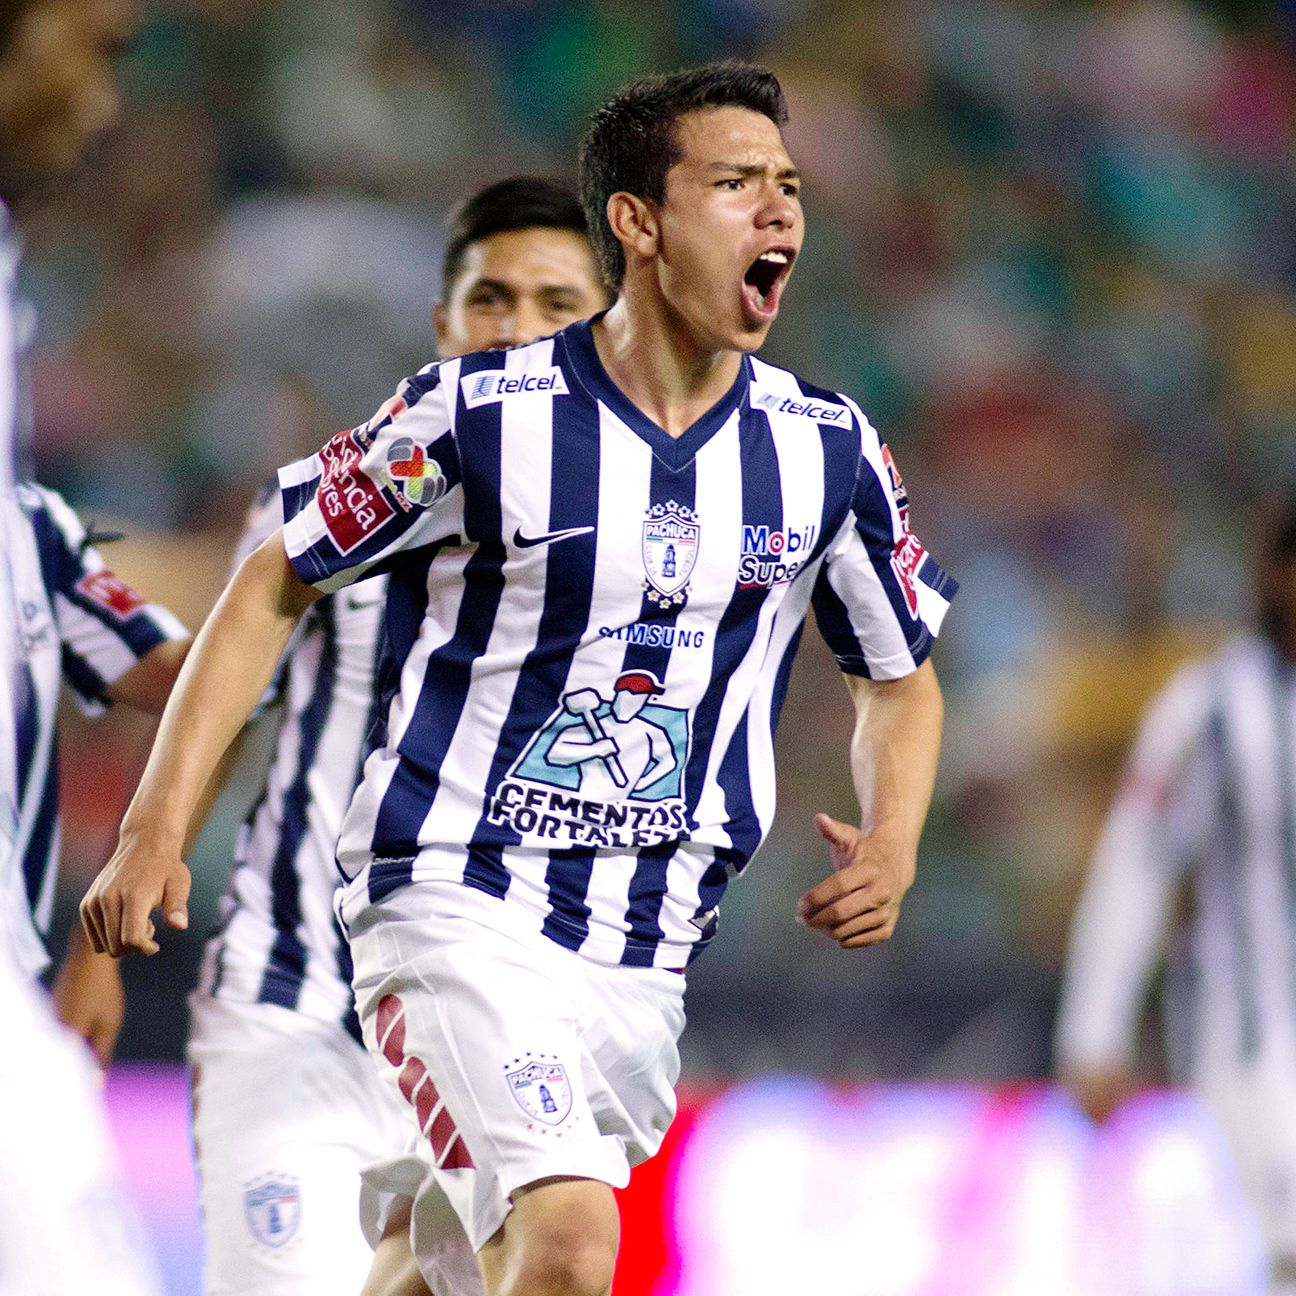 Hirving Lozano is just one of many promising players emerging from Pachuca's youth ranks.